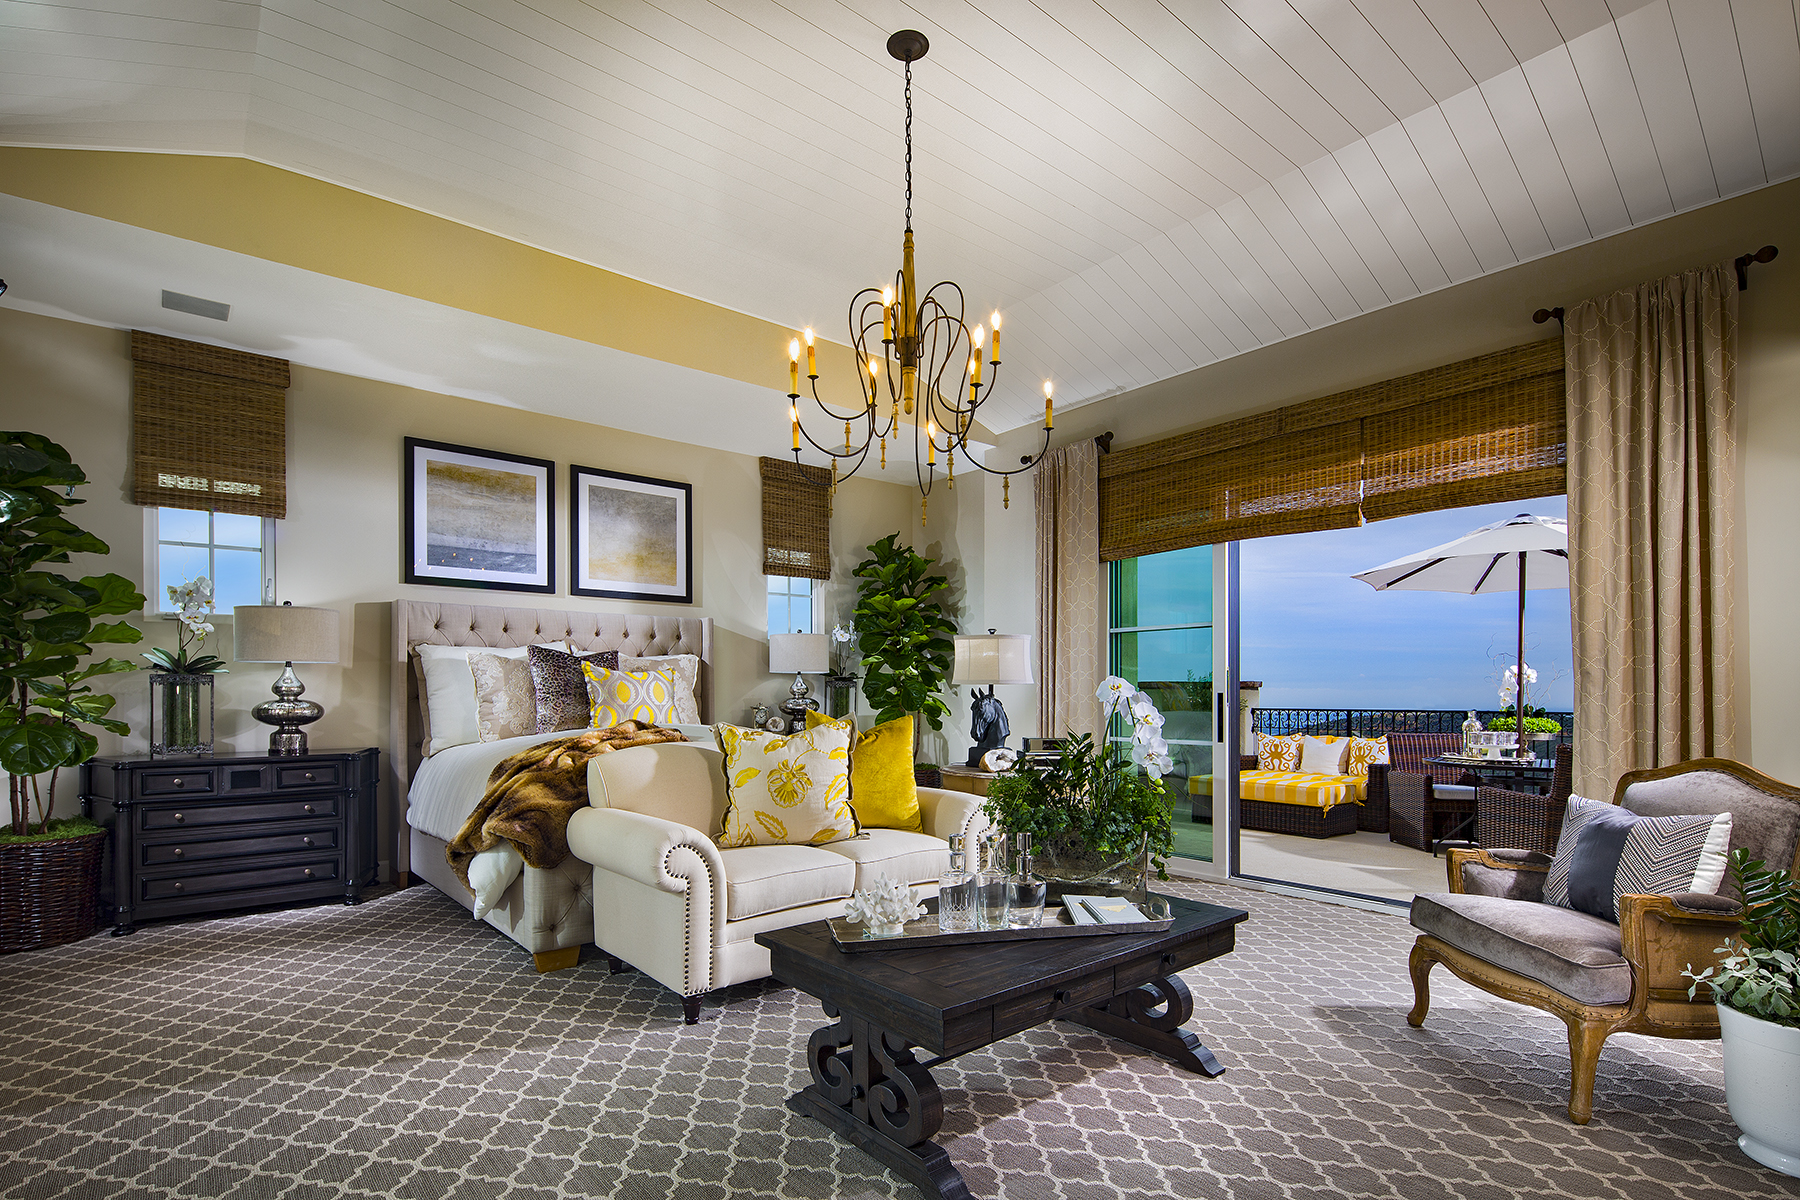 1703-07_PL1_Master_The_Estates_DavidsonCommunities_EricFiggePhotos.jpg